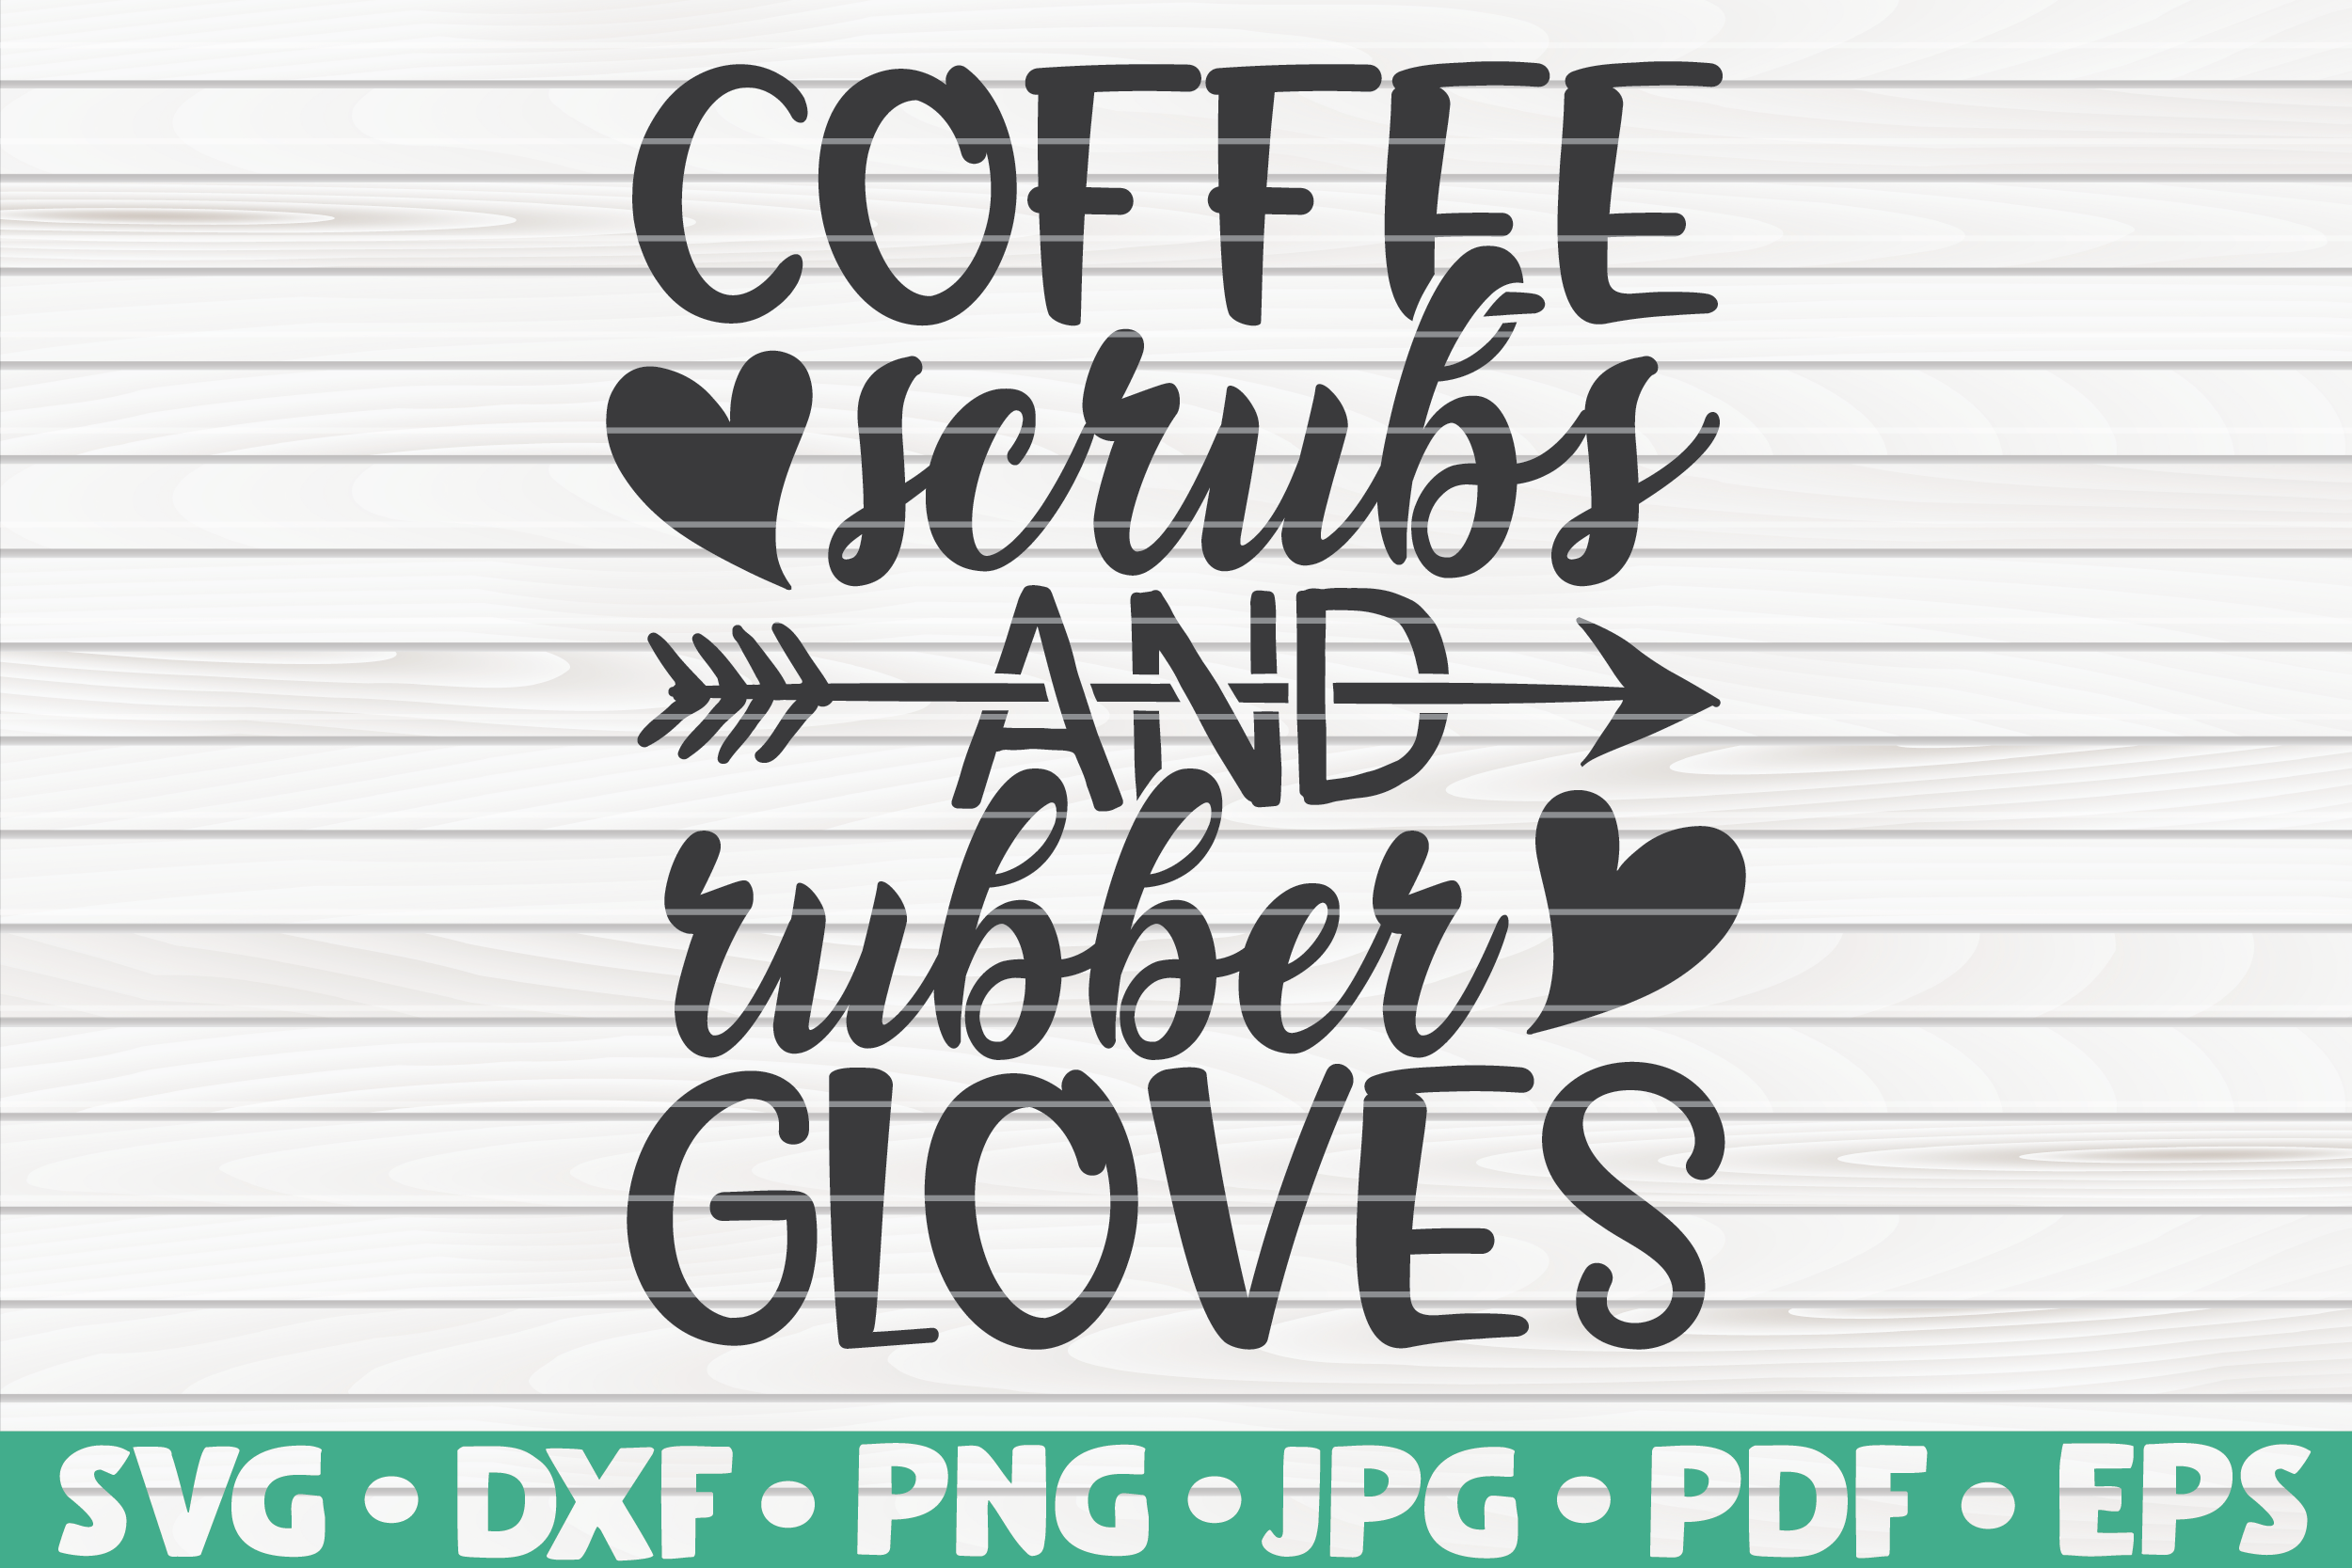 Download Free Coffee Scrubs And Rubber Gloves Graphic By Mihaibadea95 for Cricut Explore, Silhouette and other cutting machines.